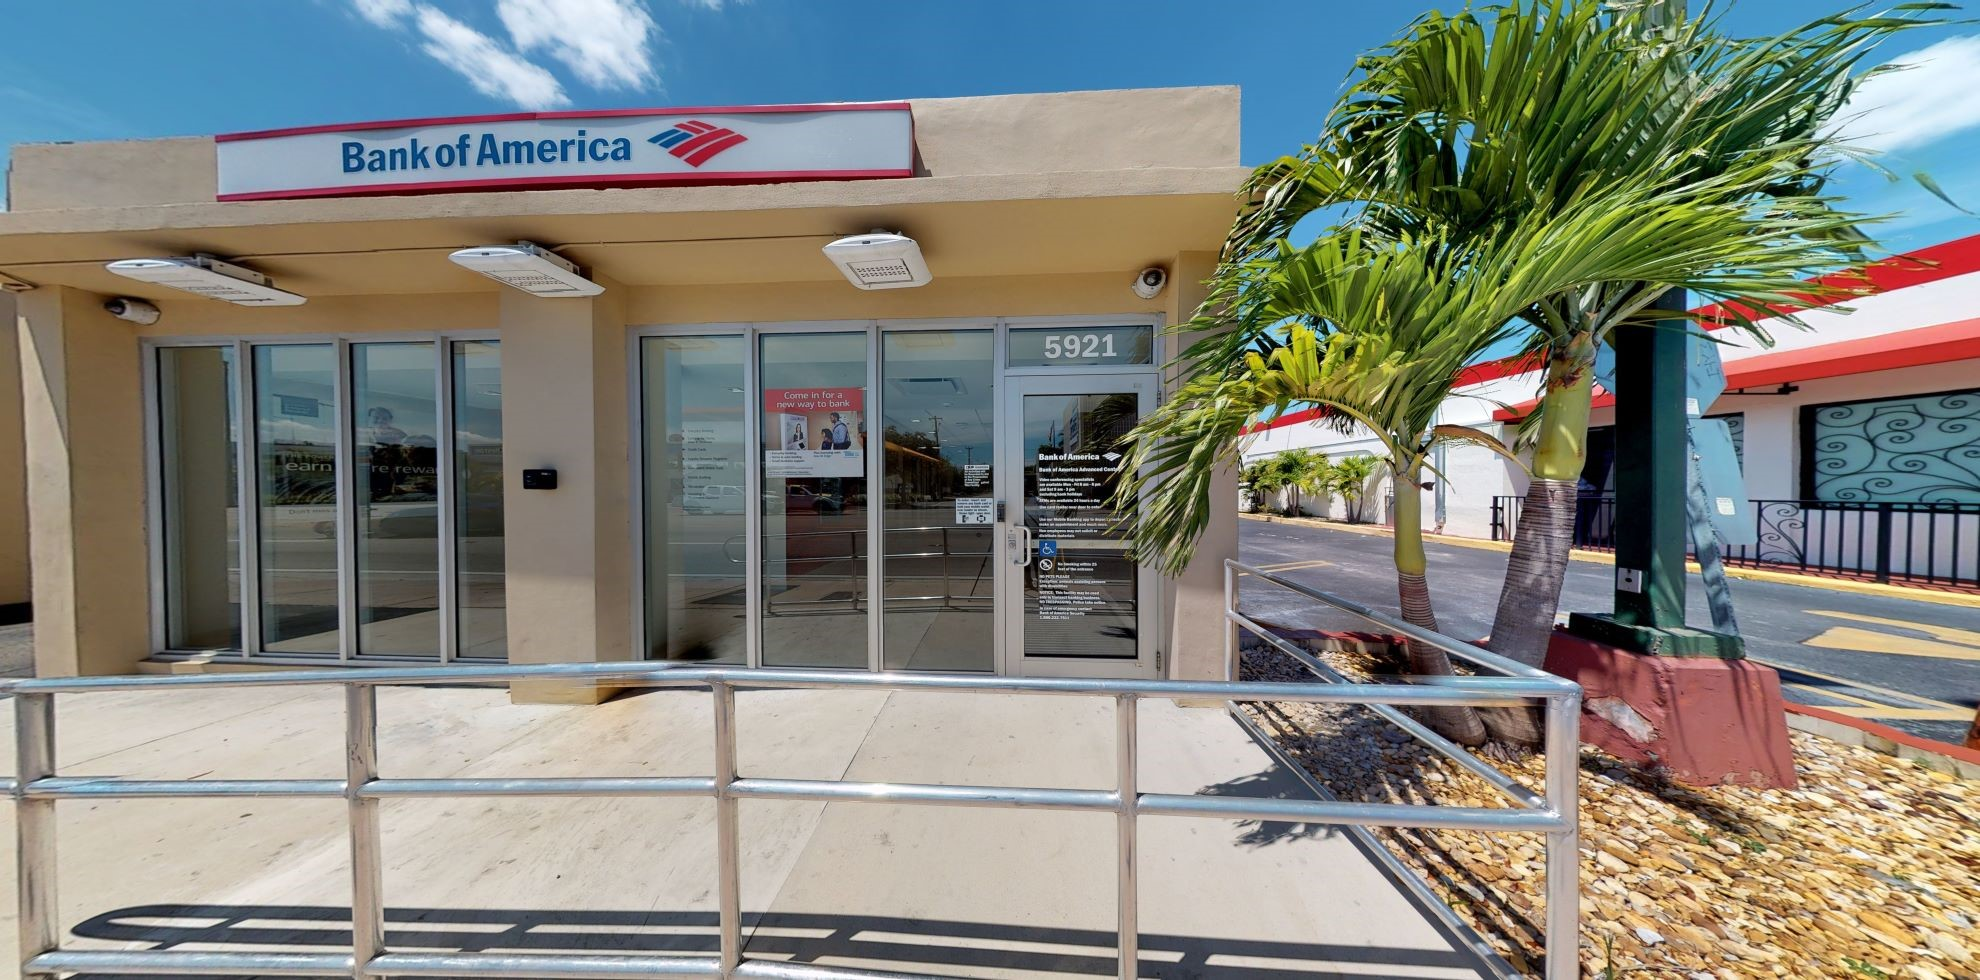 Bank of America Advanced Center with walk-up ATM   5921 SW 8th St, Miami, FL 33144